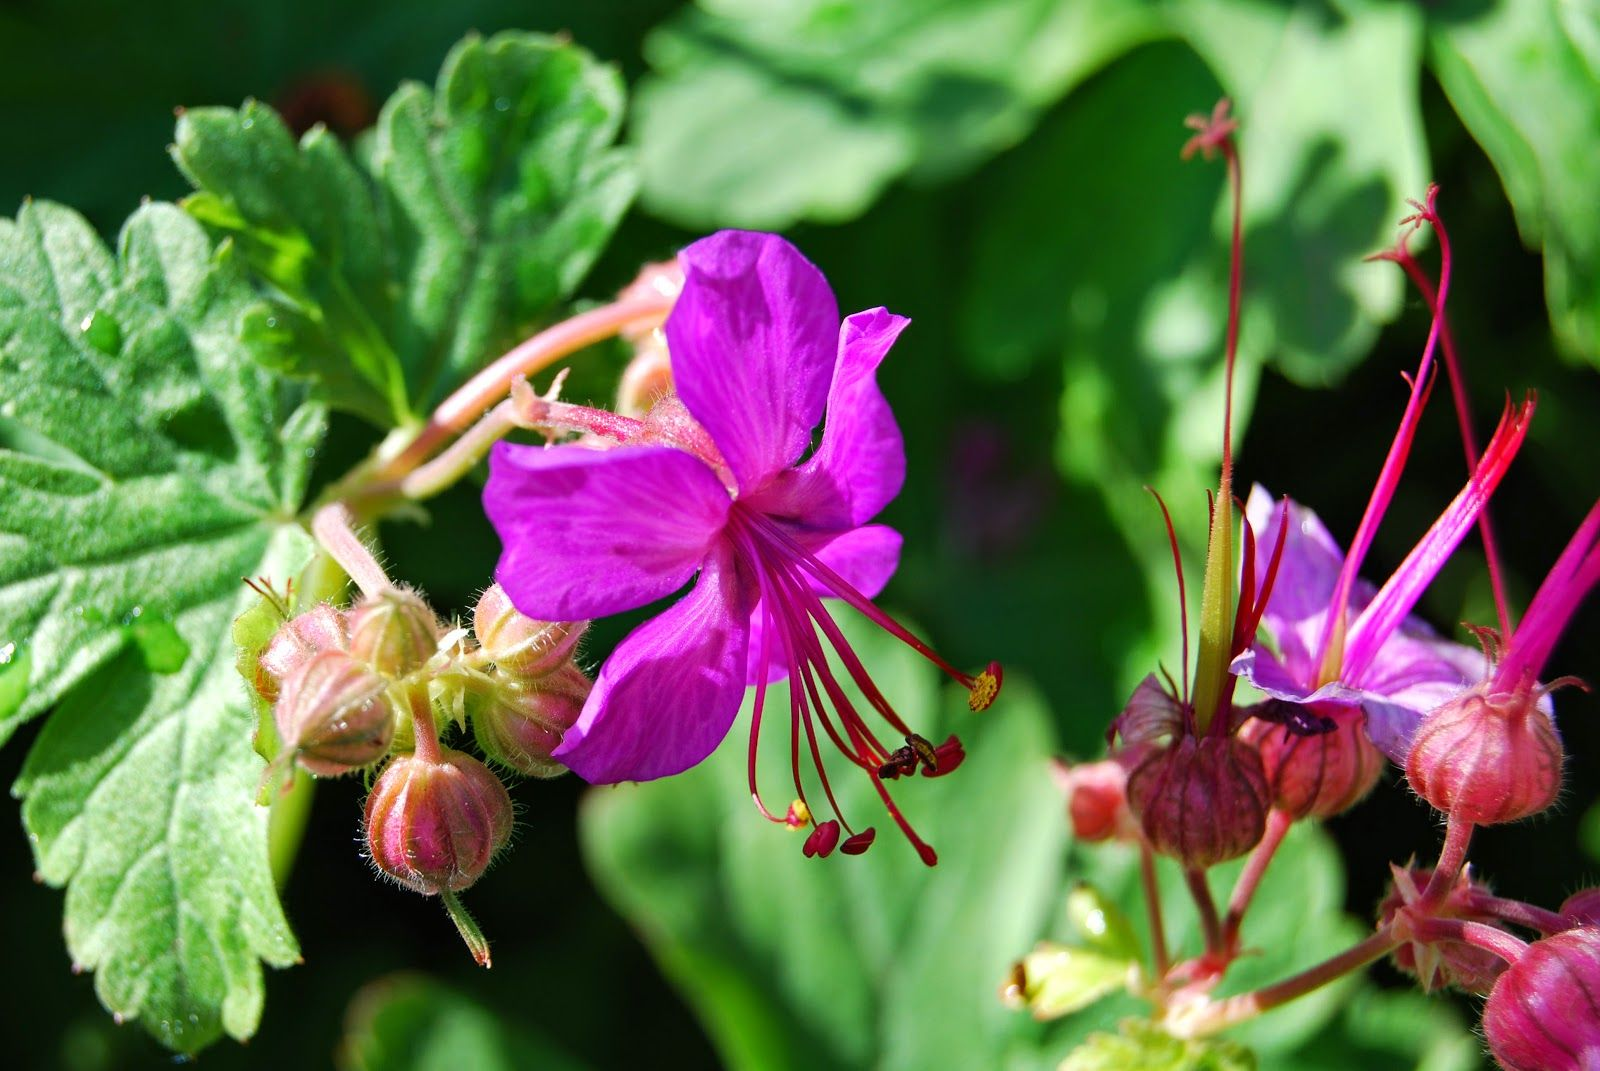 Hardy Geranium Pink Lovely Sunny Picture Beautiful Flowers